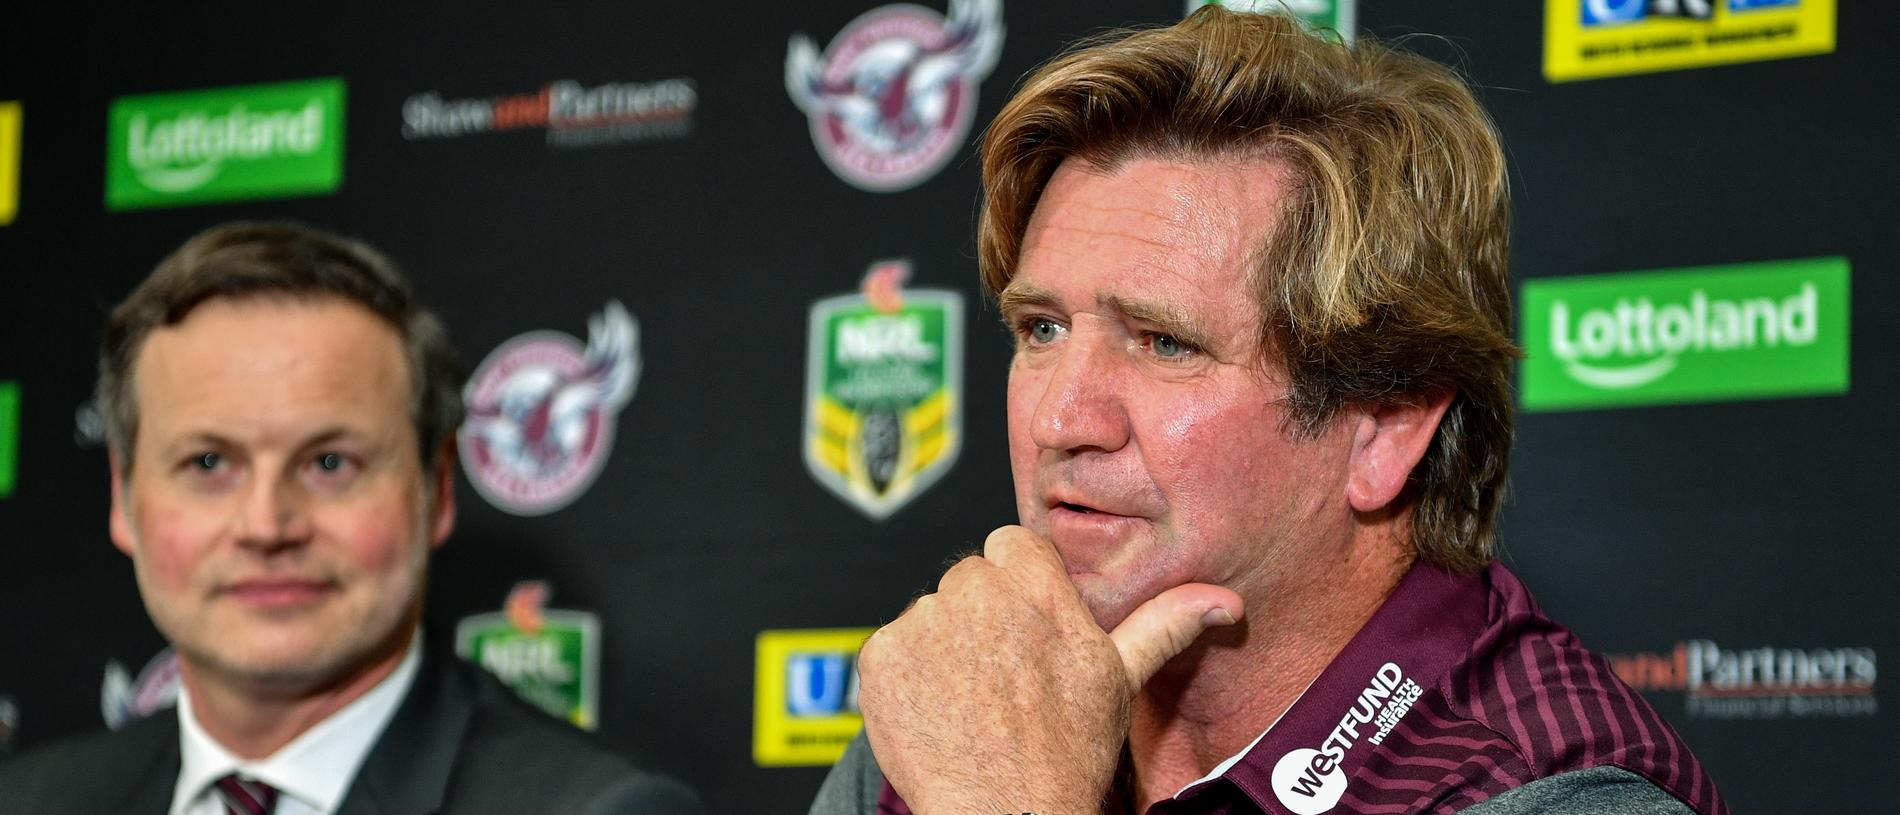 Newly appointed Manly Sea Eagles Coach Des Hasler (right) is seen at a press conference in Sydney, Monday, October 22, 2018. (AAP Image/Brendan Esposito) NO ARCHIVING